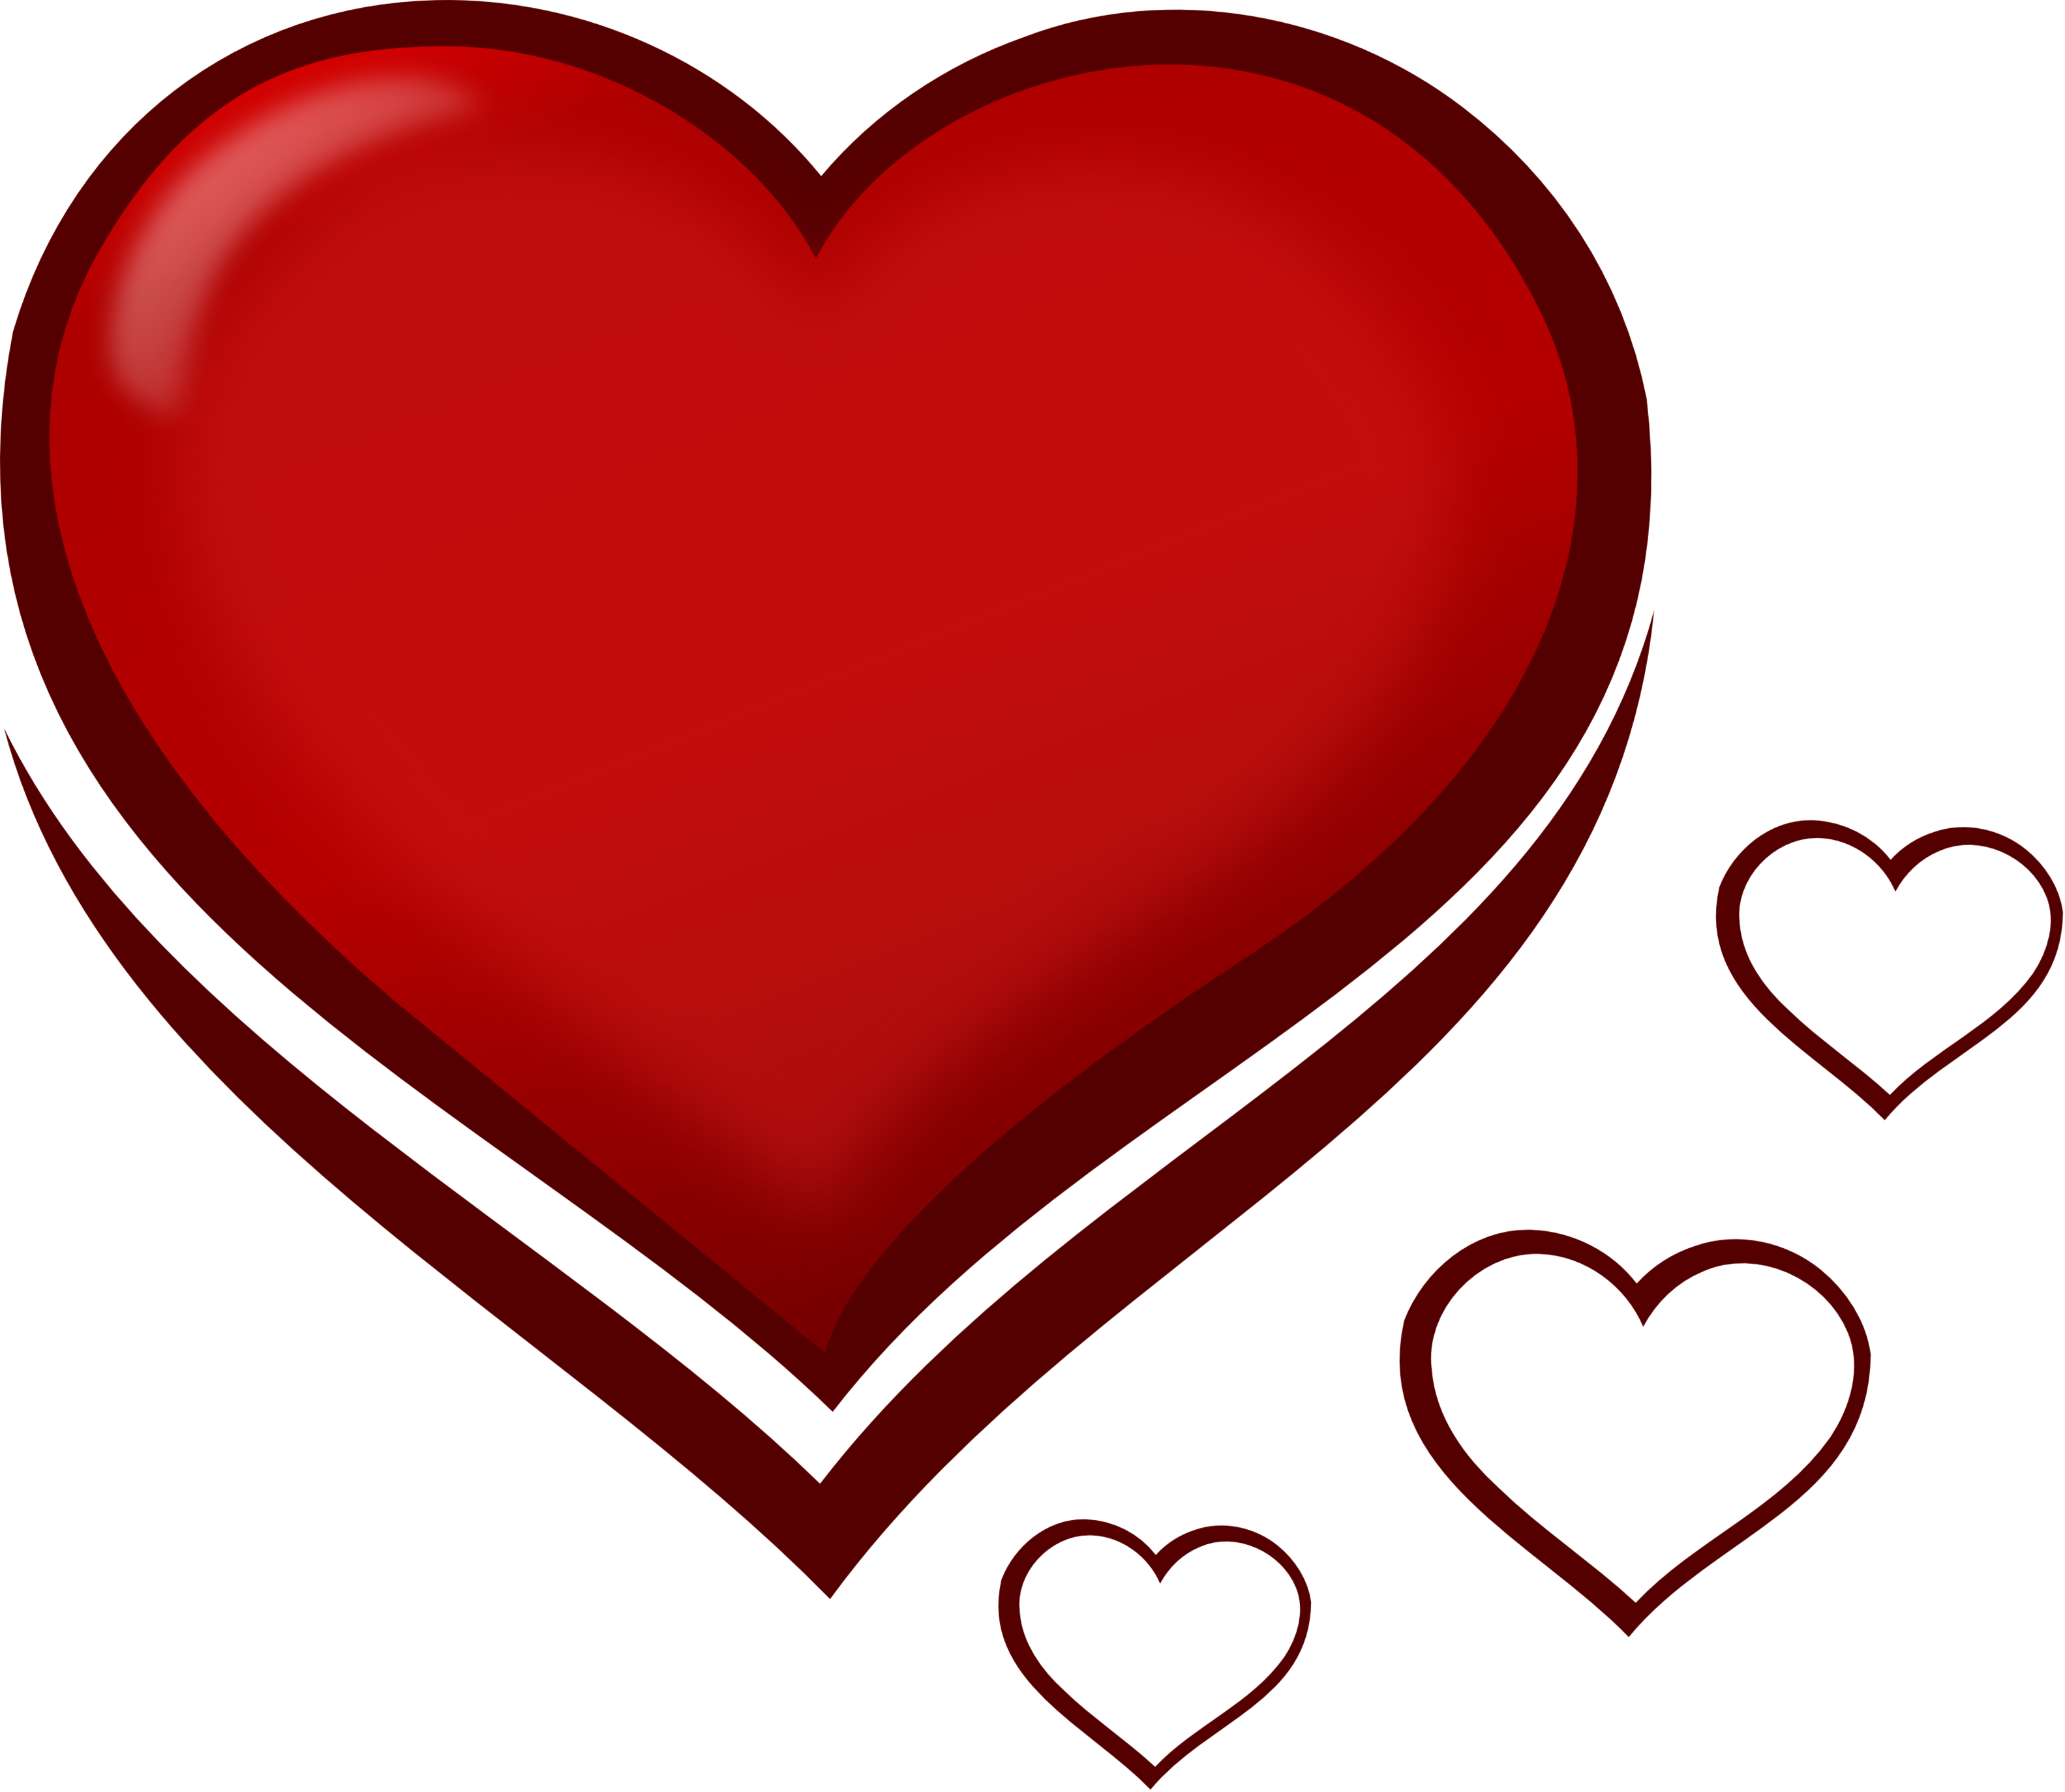 Valentine Red Stylised Heart With Smaller Hearts SVG Clipart.